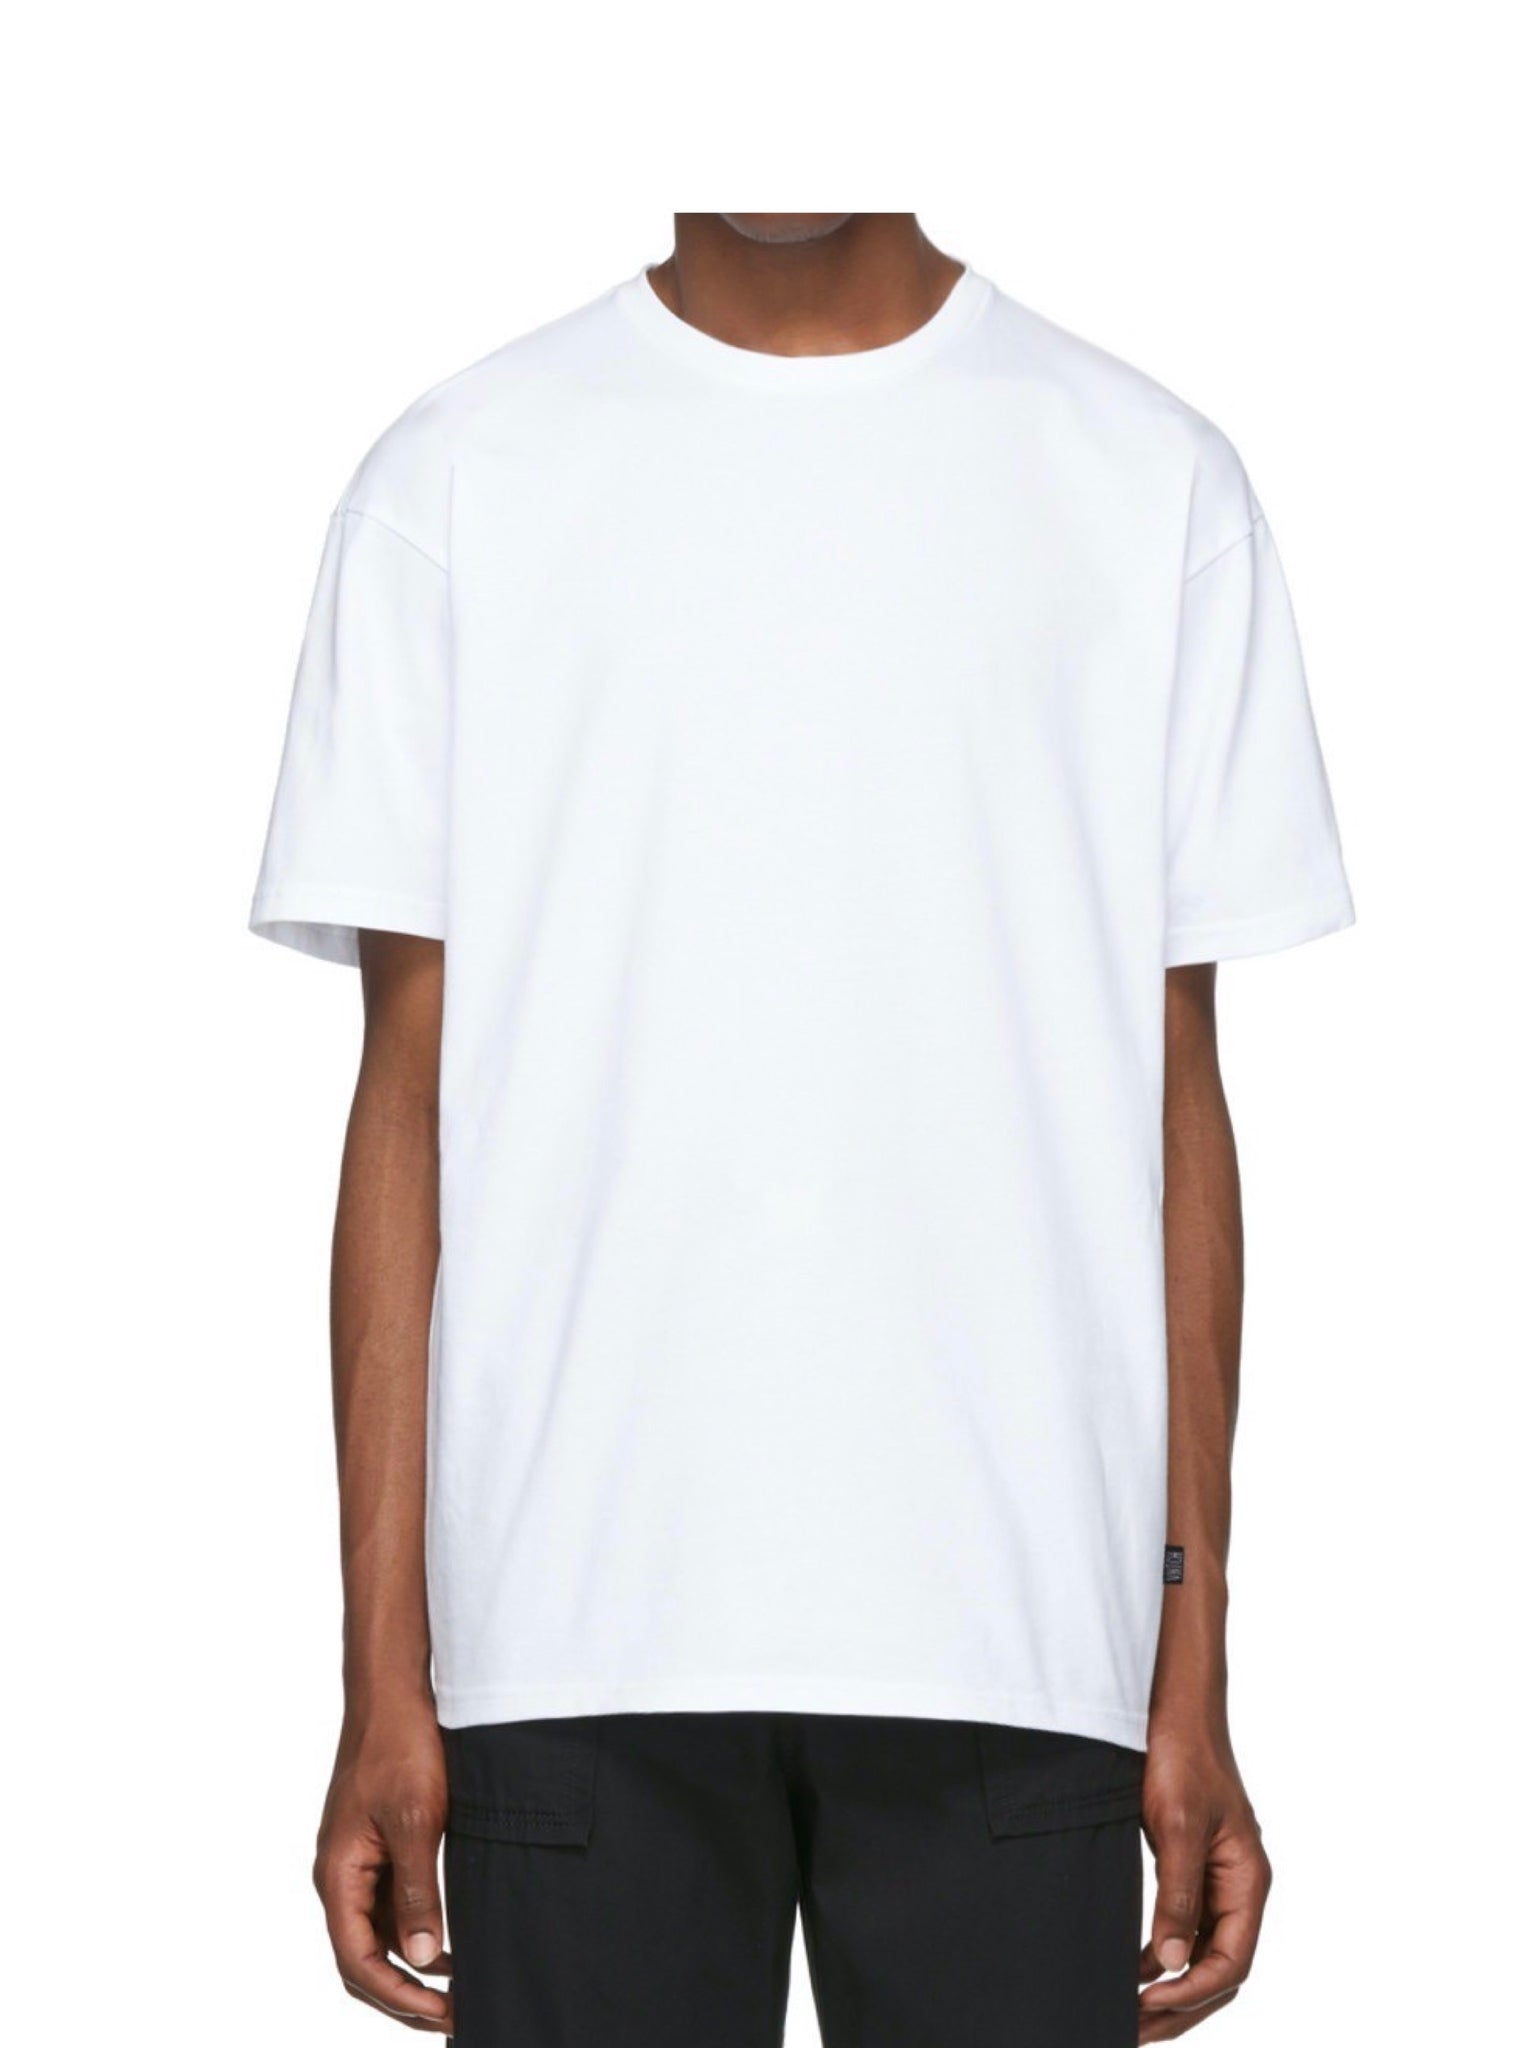 VNTCH BASIC T-SHIRT WHITE